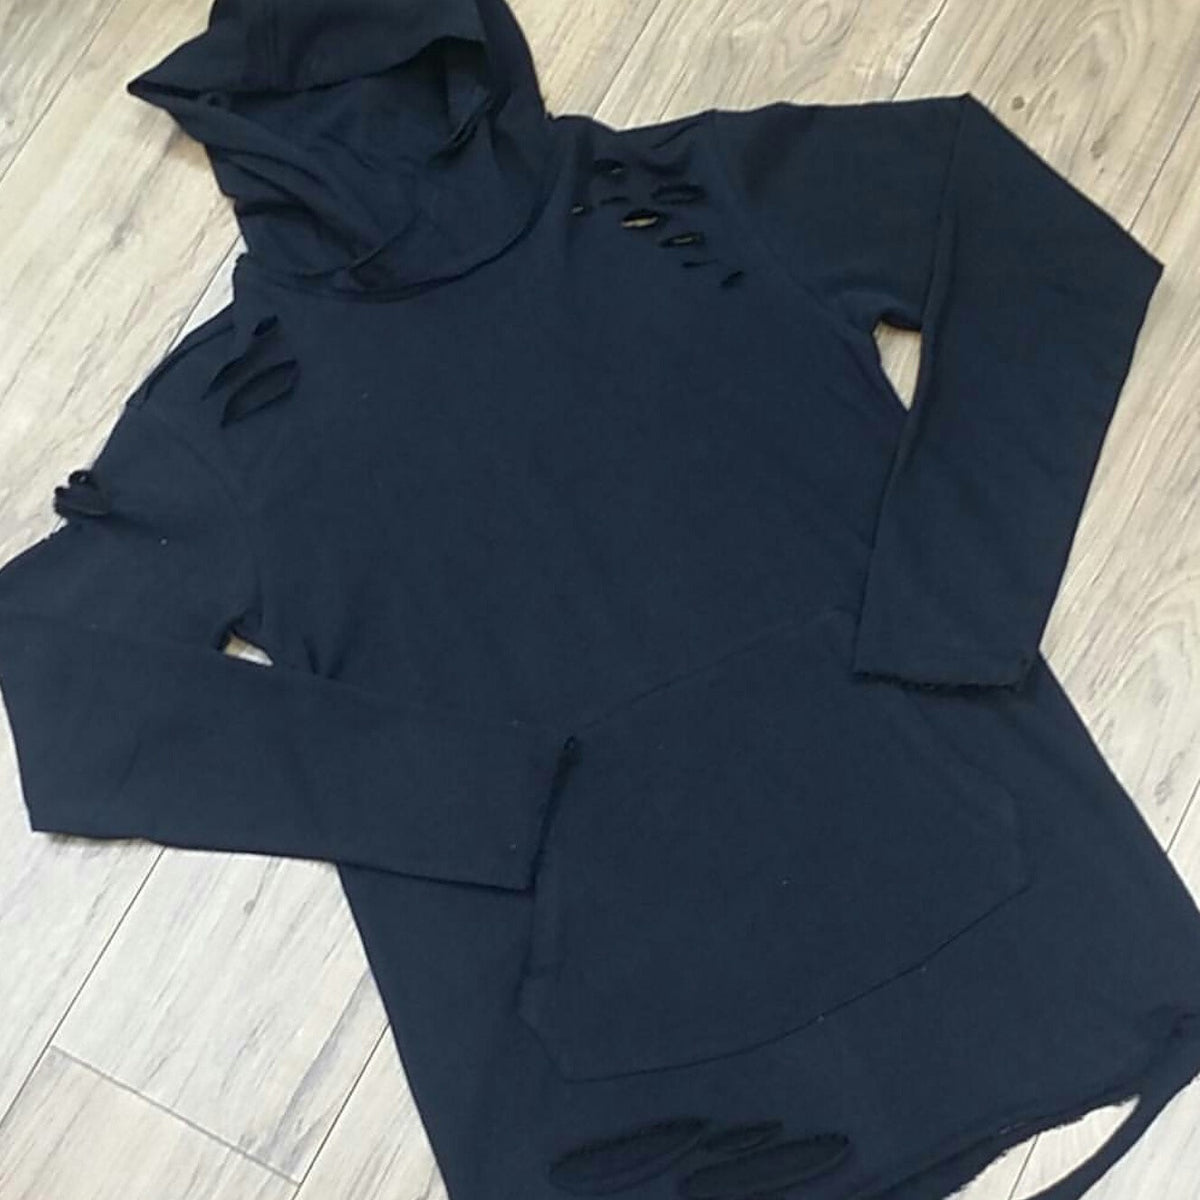 BLACK LS RIPPED HOODY 8264H - cosign1975